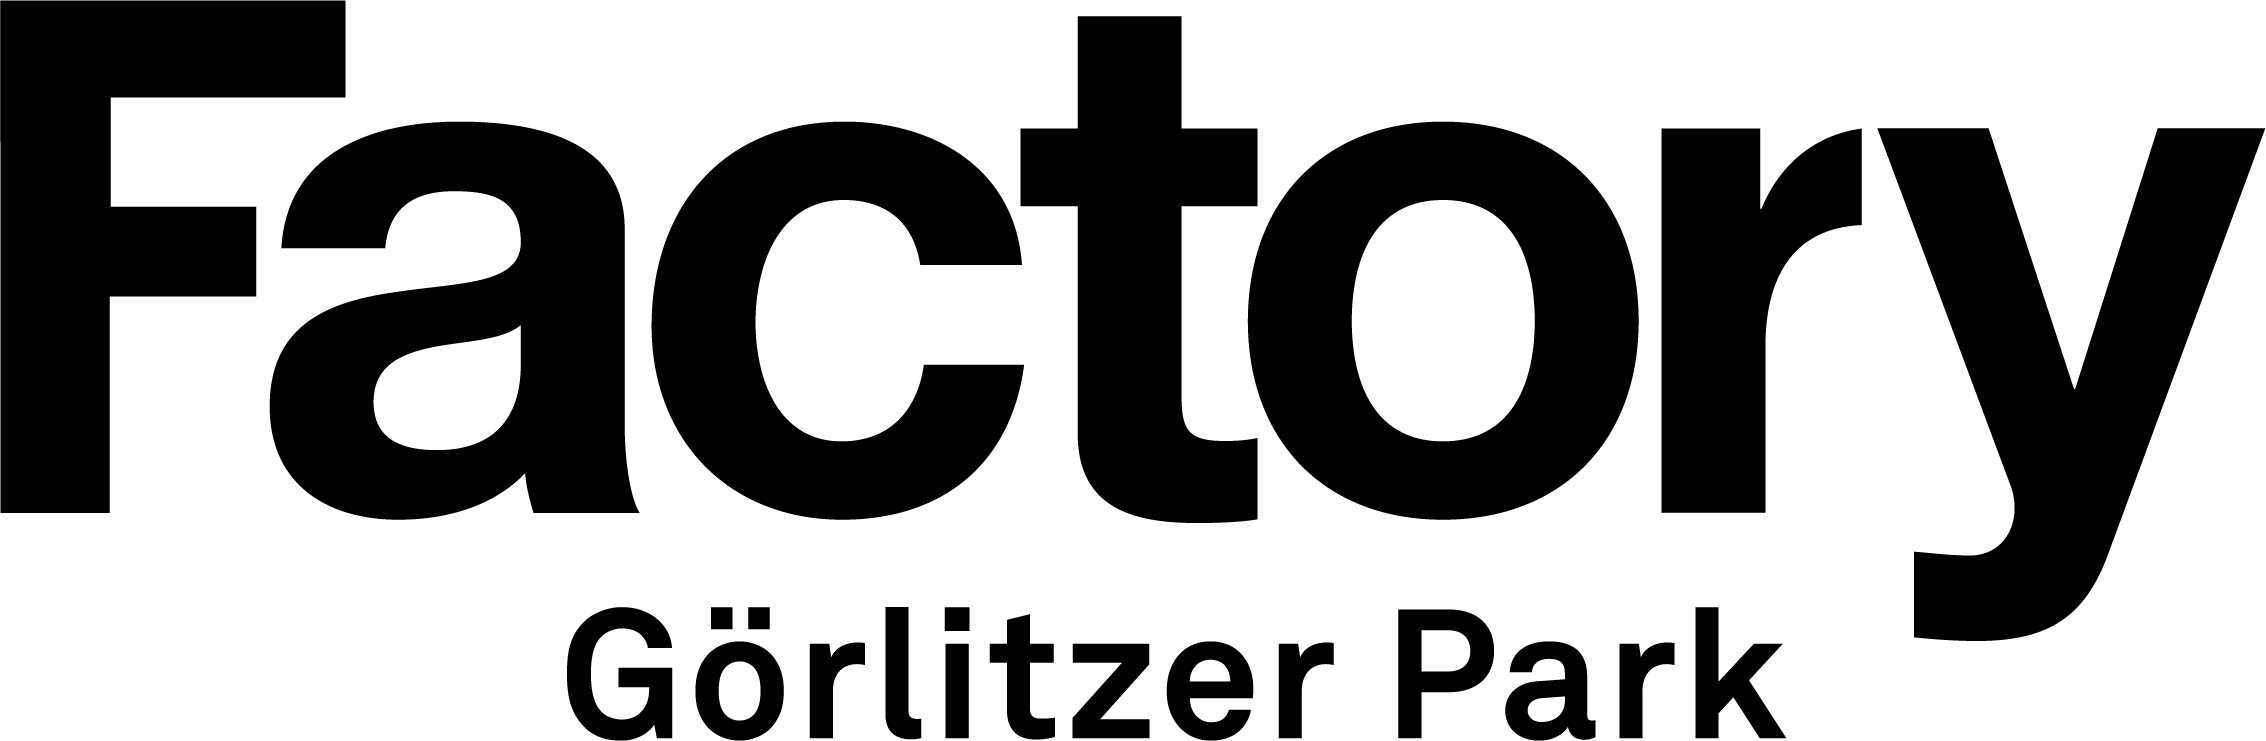 Logo_FactoryGoerlitzerPark_black.png